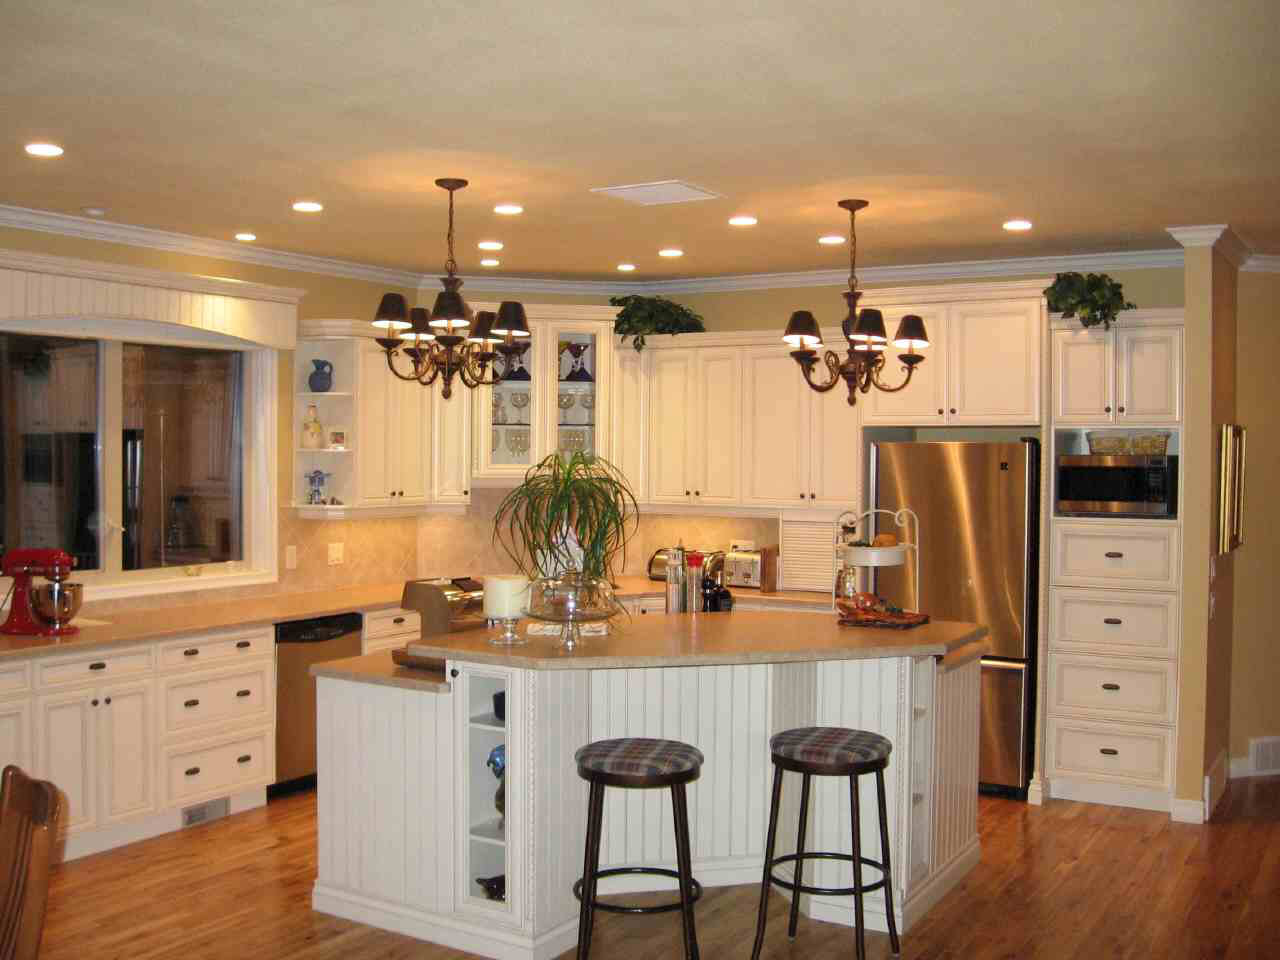 40 drool worthy kitchen island designs slodive for Country kitchen designs